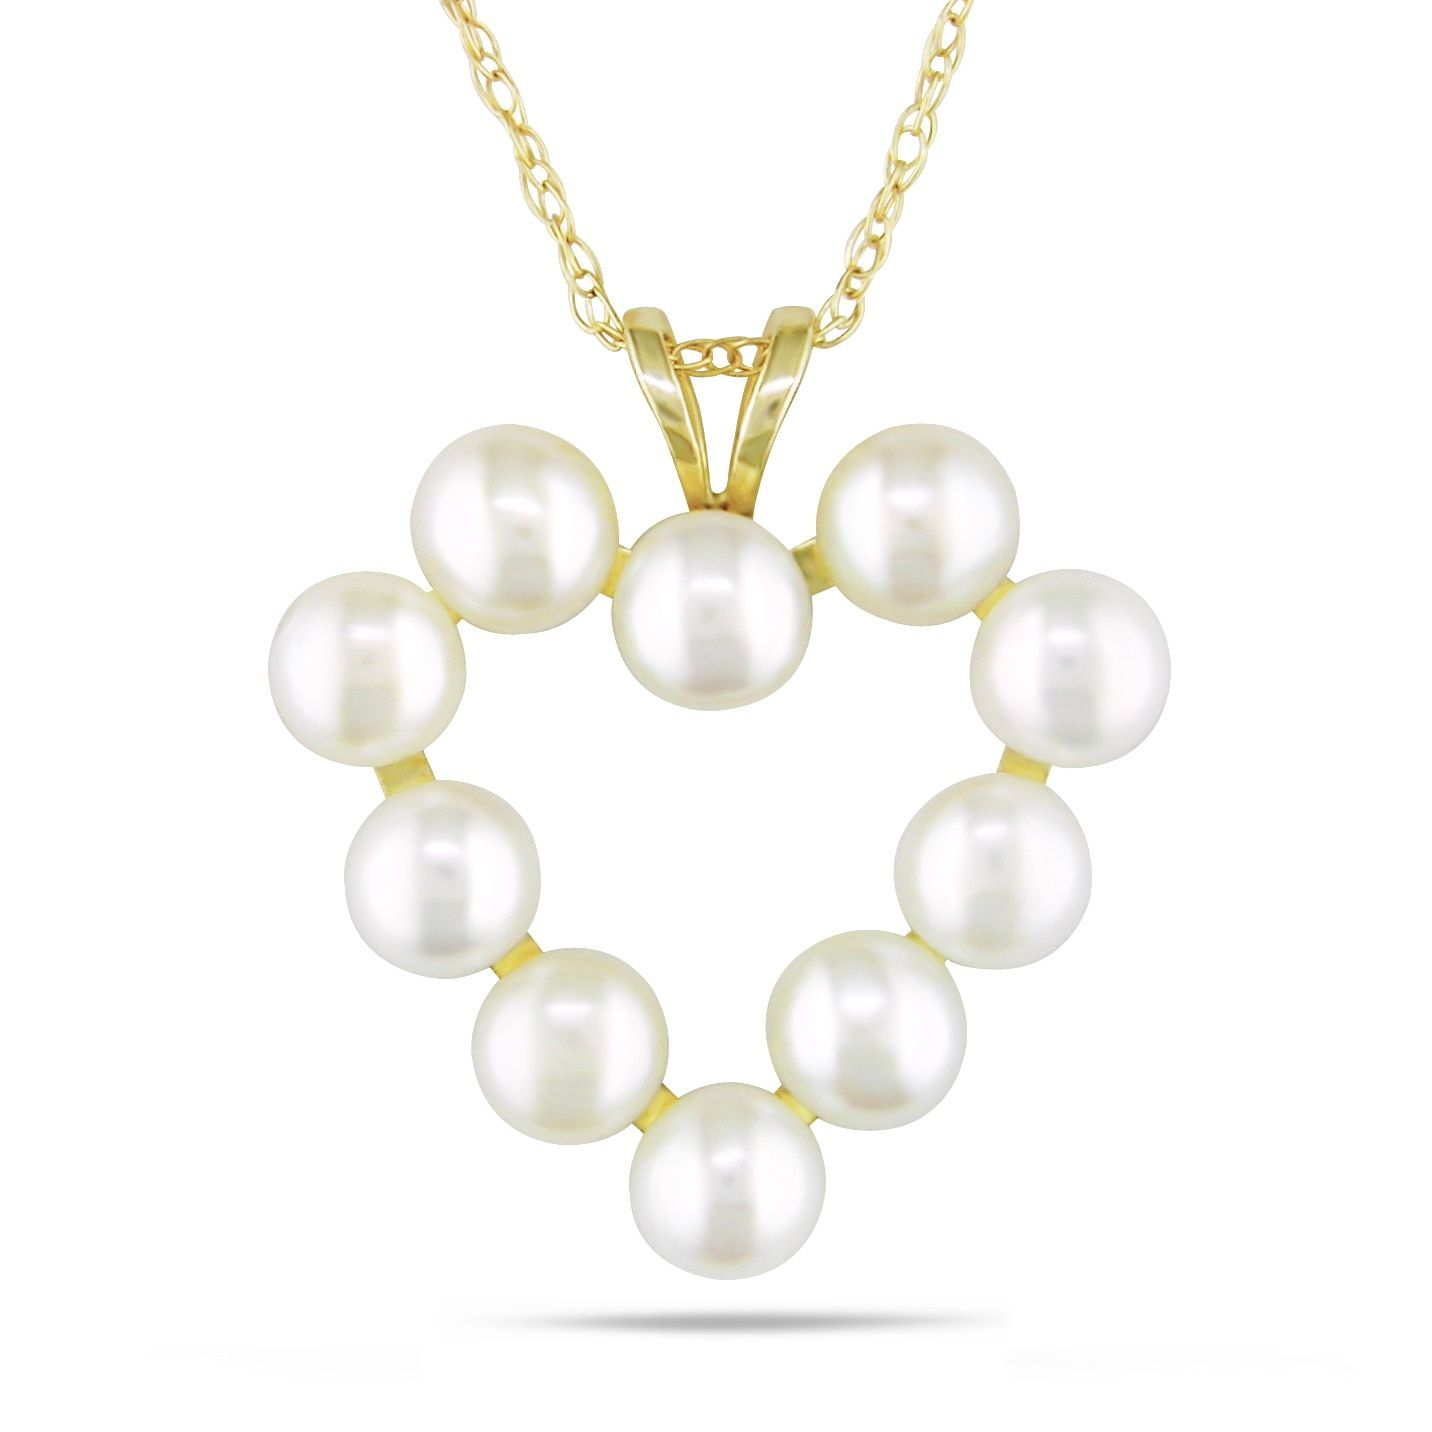 Miadora k yellow gold white cultured freshwater pearl heart